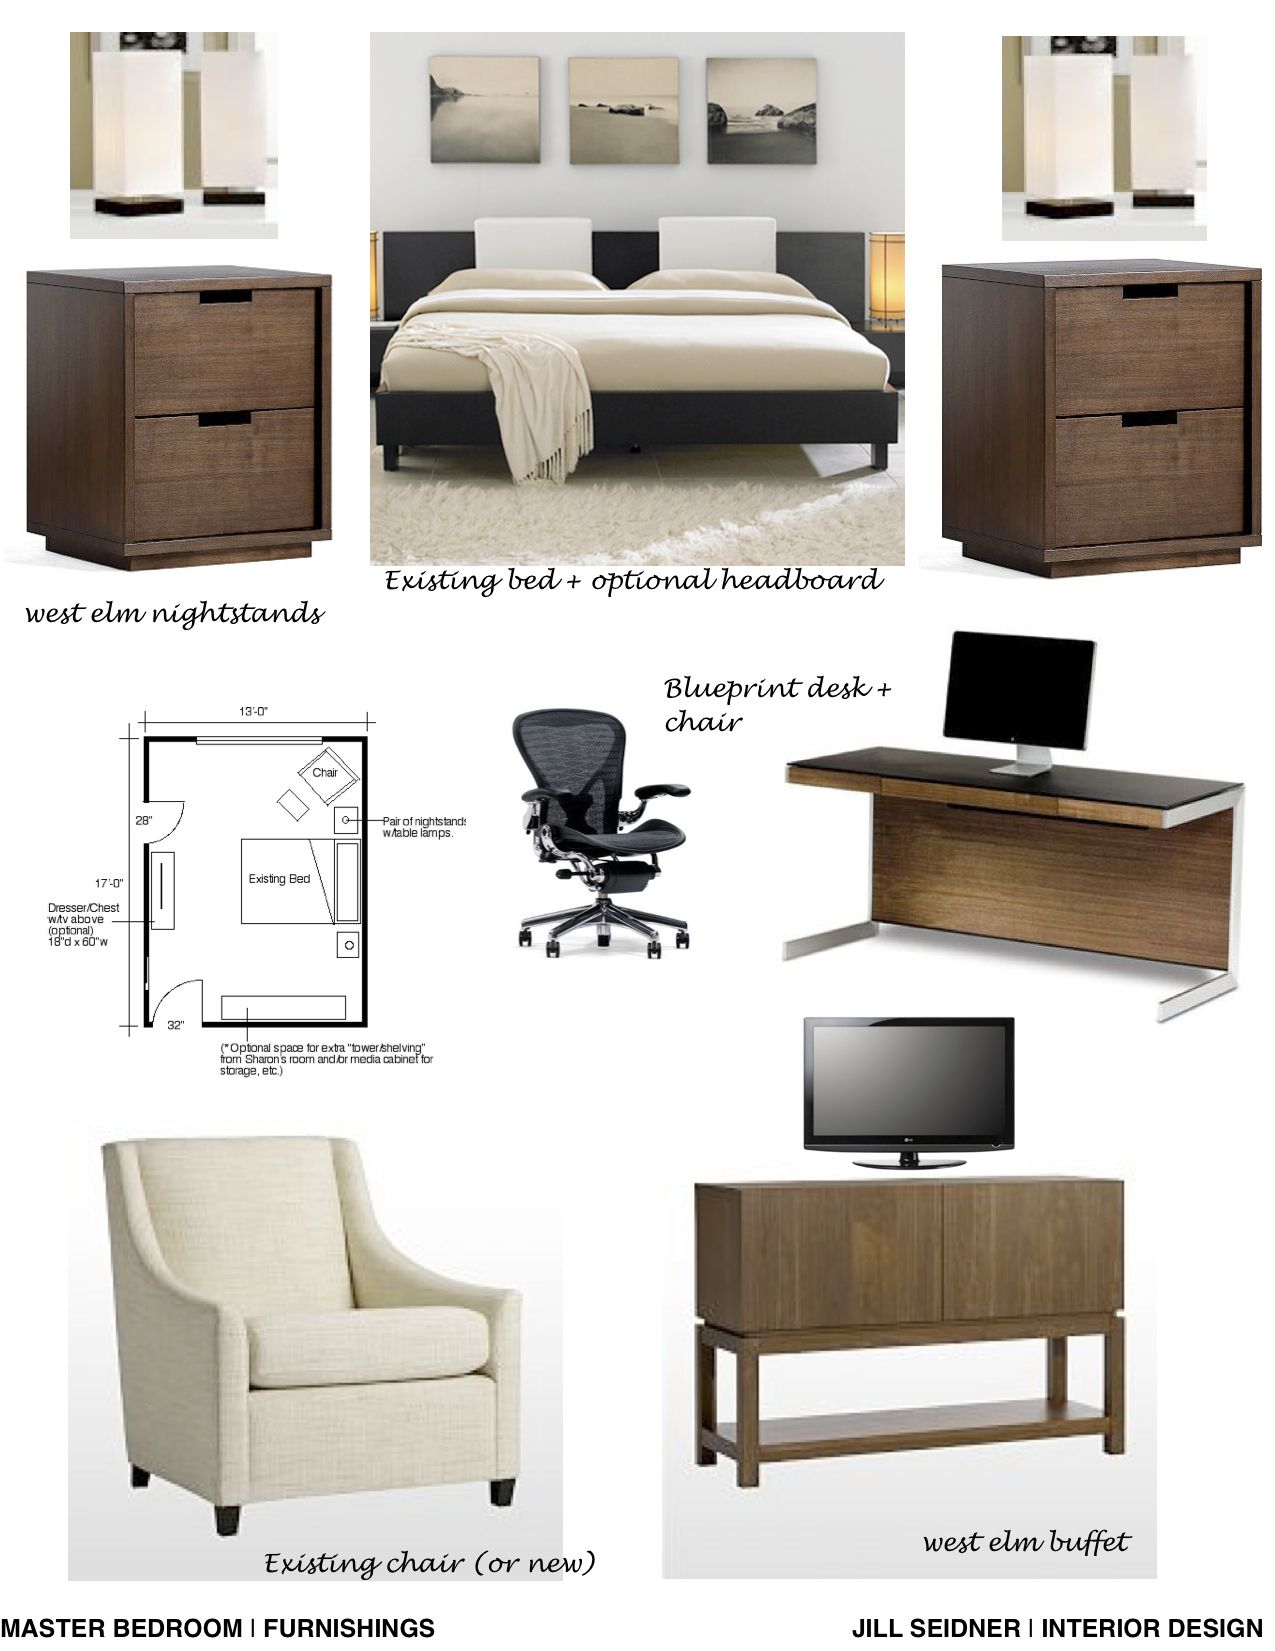 Concept Board For A Bedroom Office Work Space